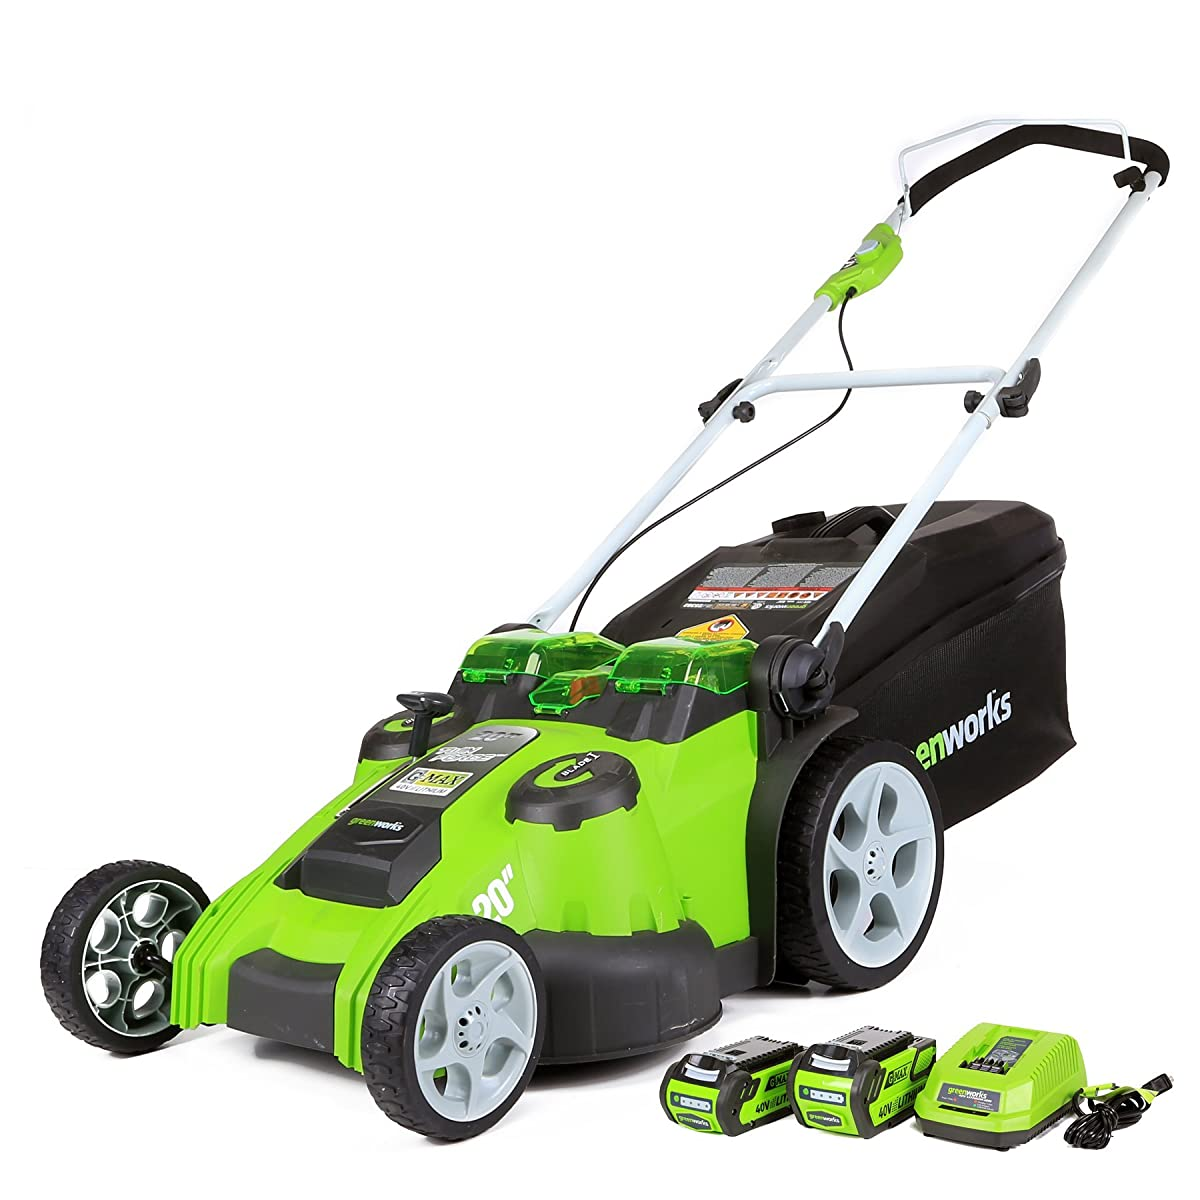 Greenworks 25302 G Max 40v Twin Force 20 Inch Cordless